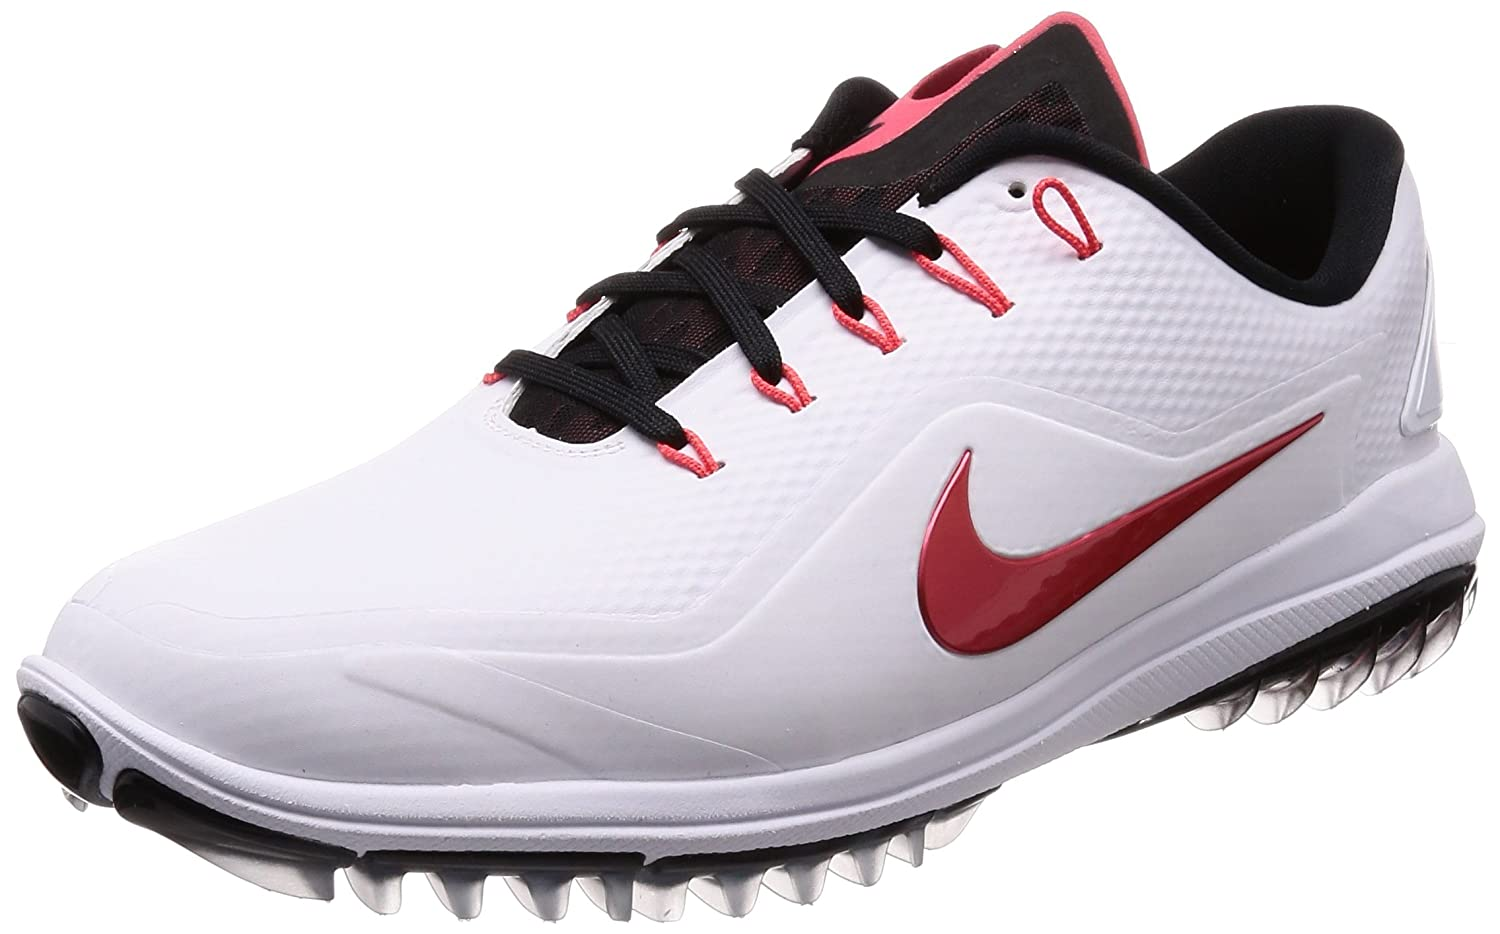 8b46a69dba2b54 Amazon.com  Nike Men s Lunar Control Vapor 2 Golf Shoes White Tropical Pink  Black 9.5 W  Sports   Outdoors